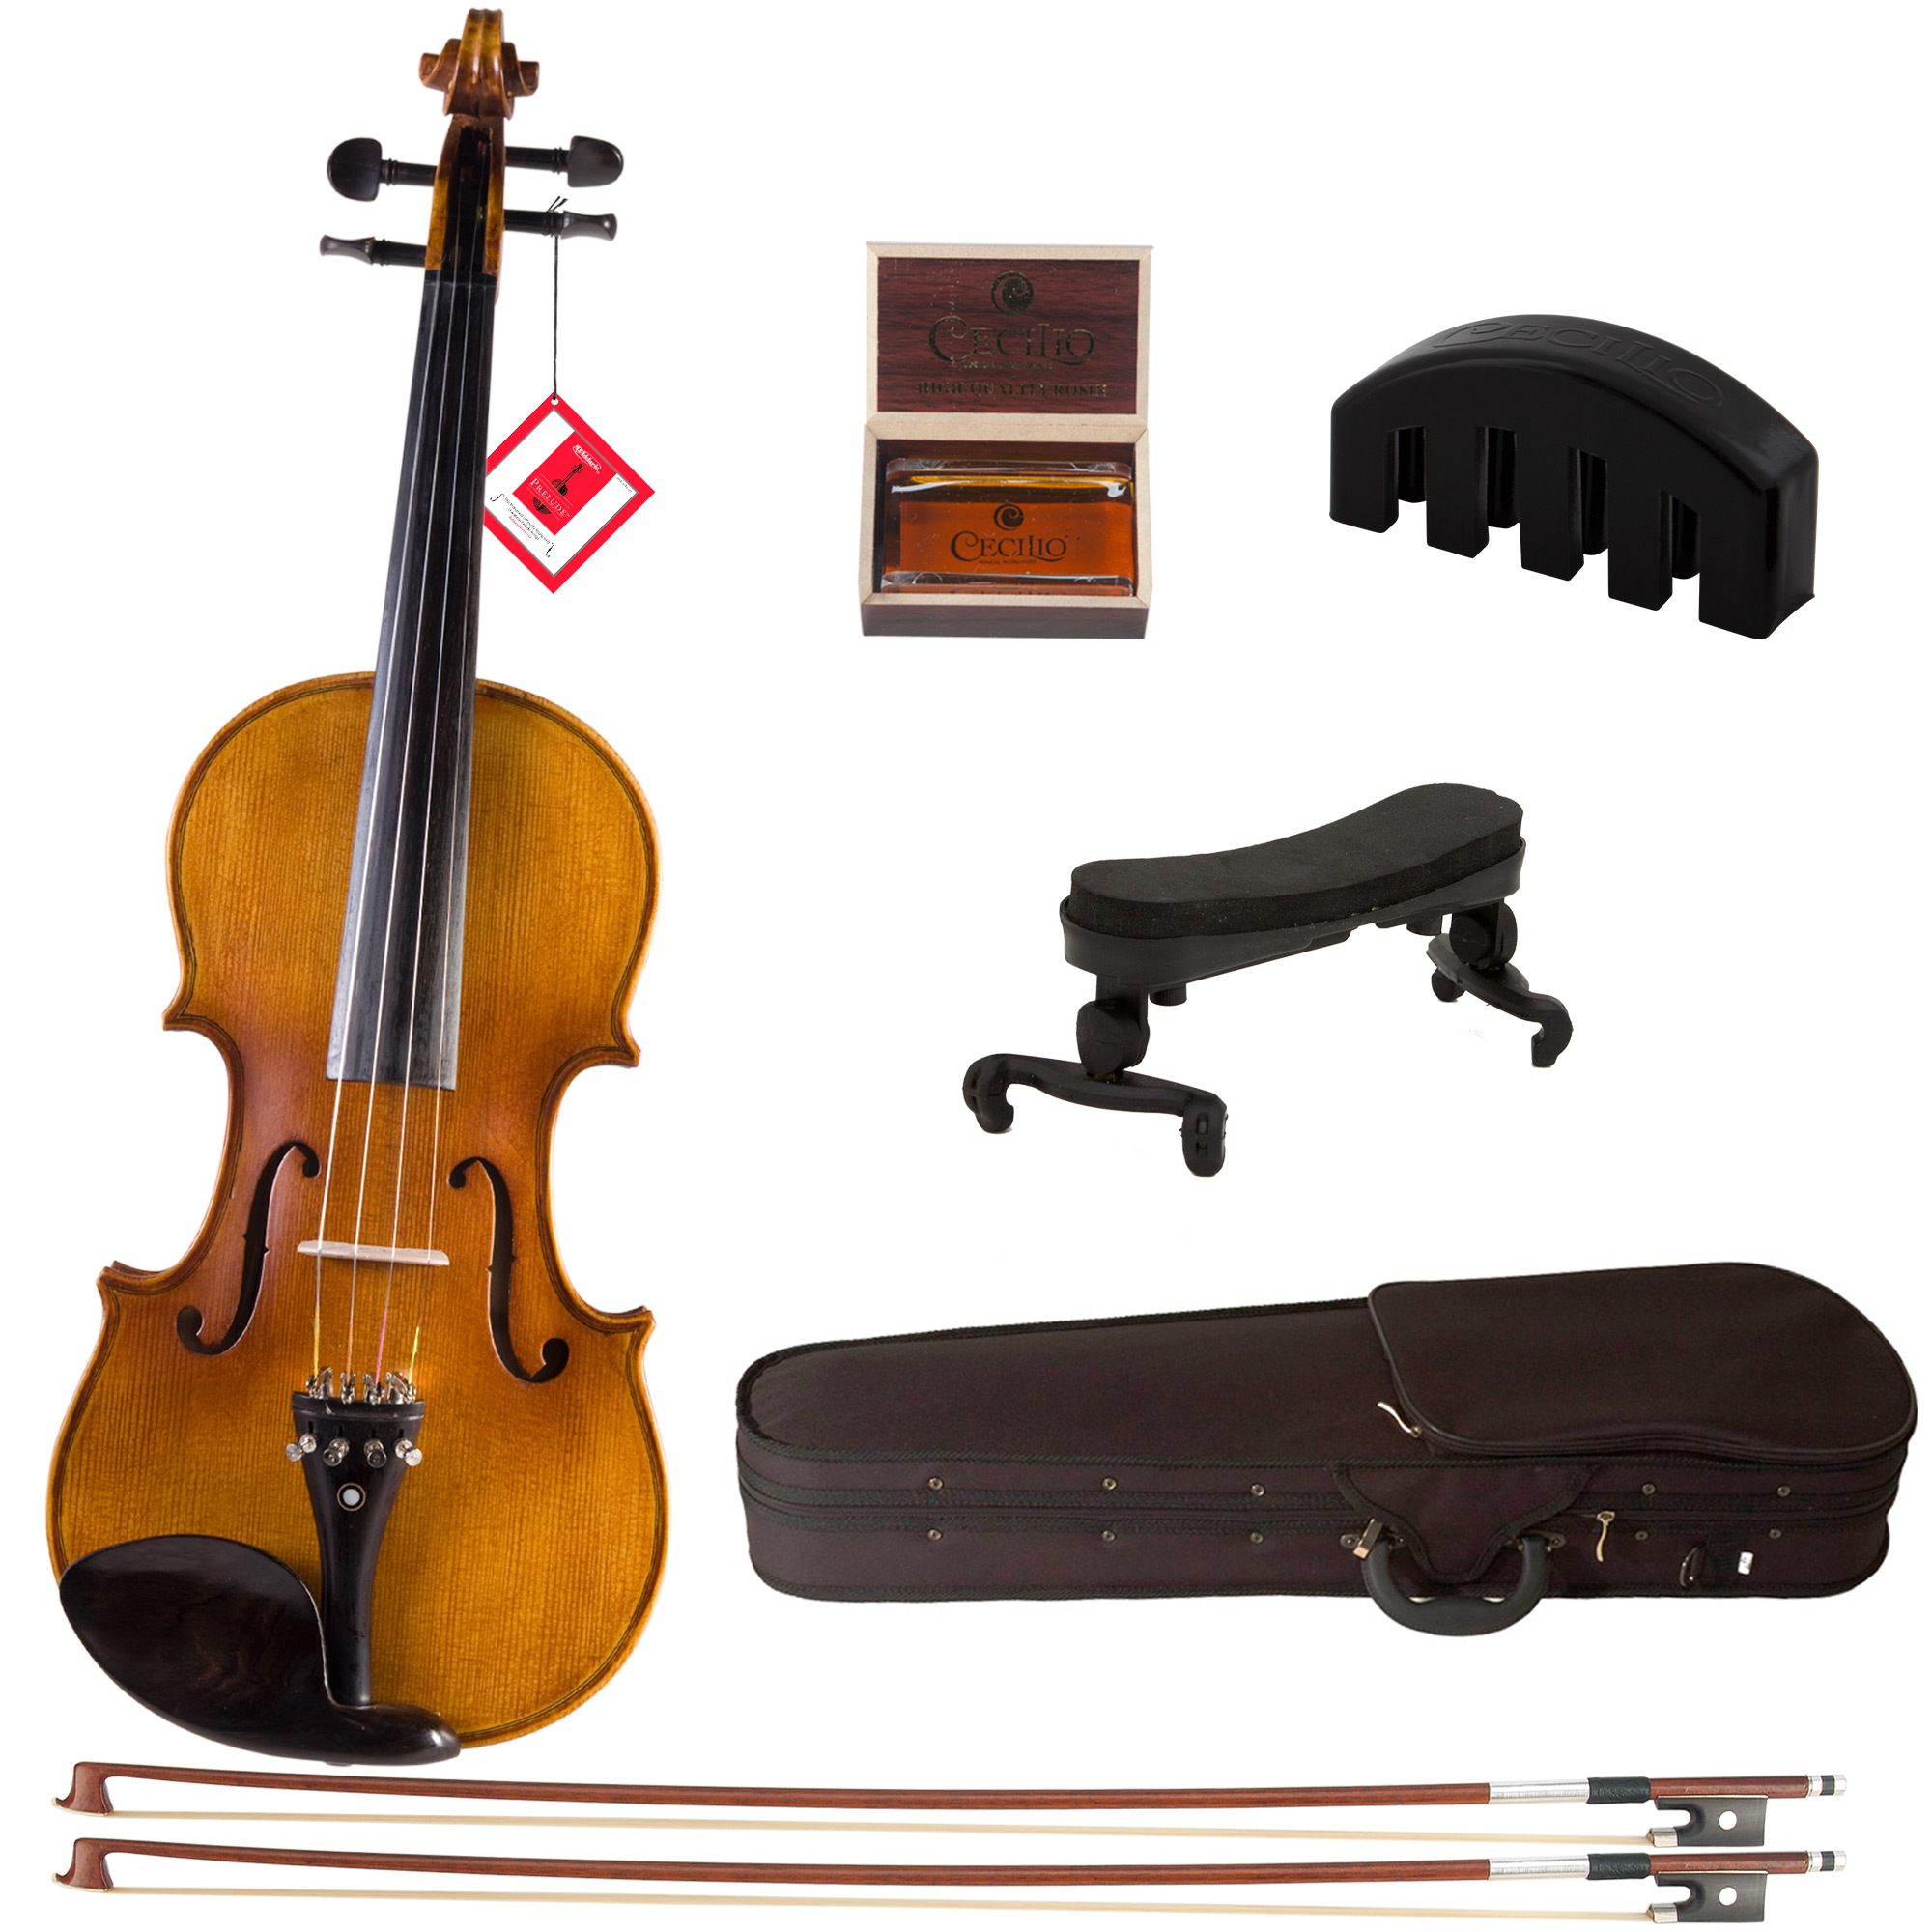 Cecilio Full Size 4/4 CVN-500 Ebony Fitted Flamed Solid Wood Violin with D'Addario Prelude Strings, Violin Mute, Shoulder Rest